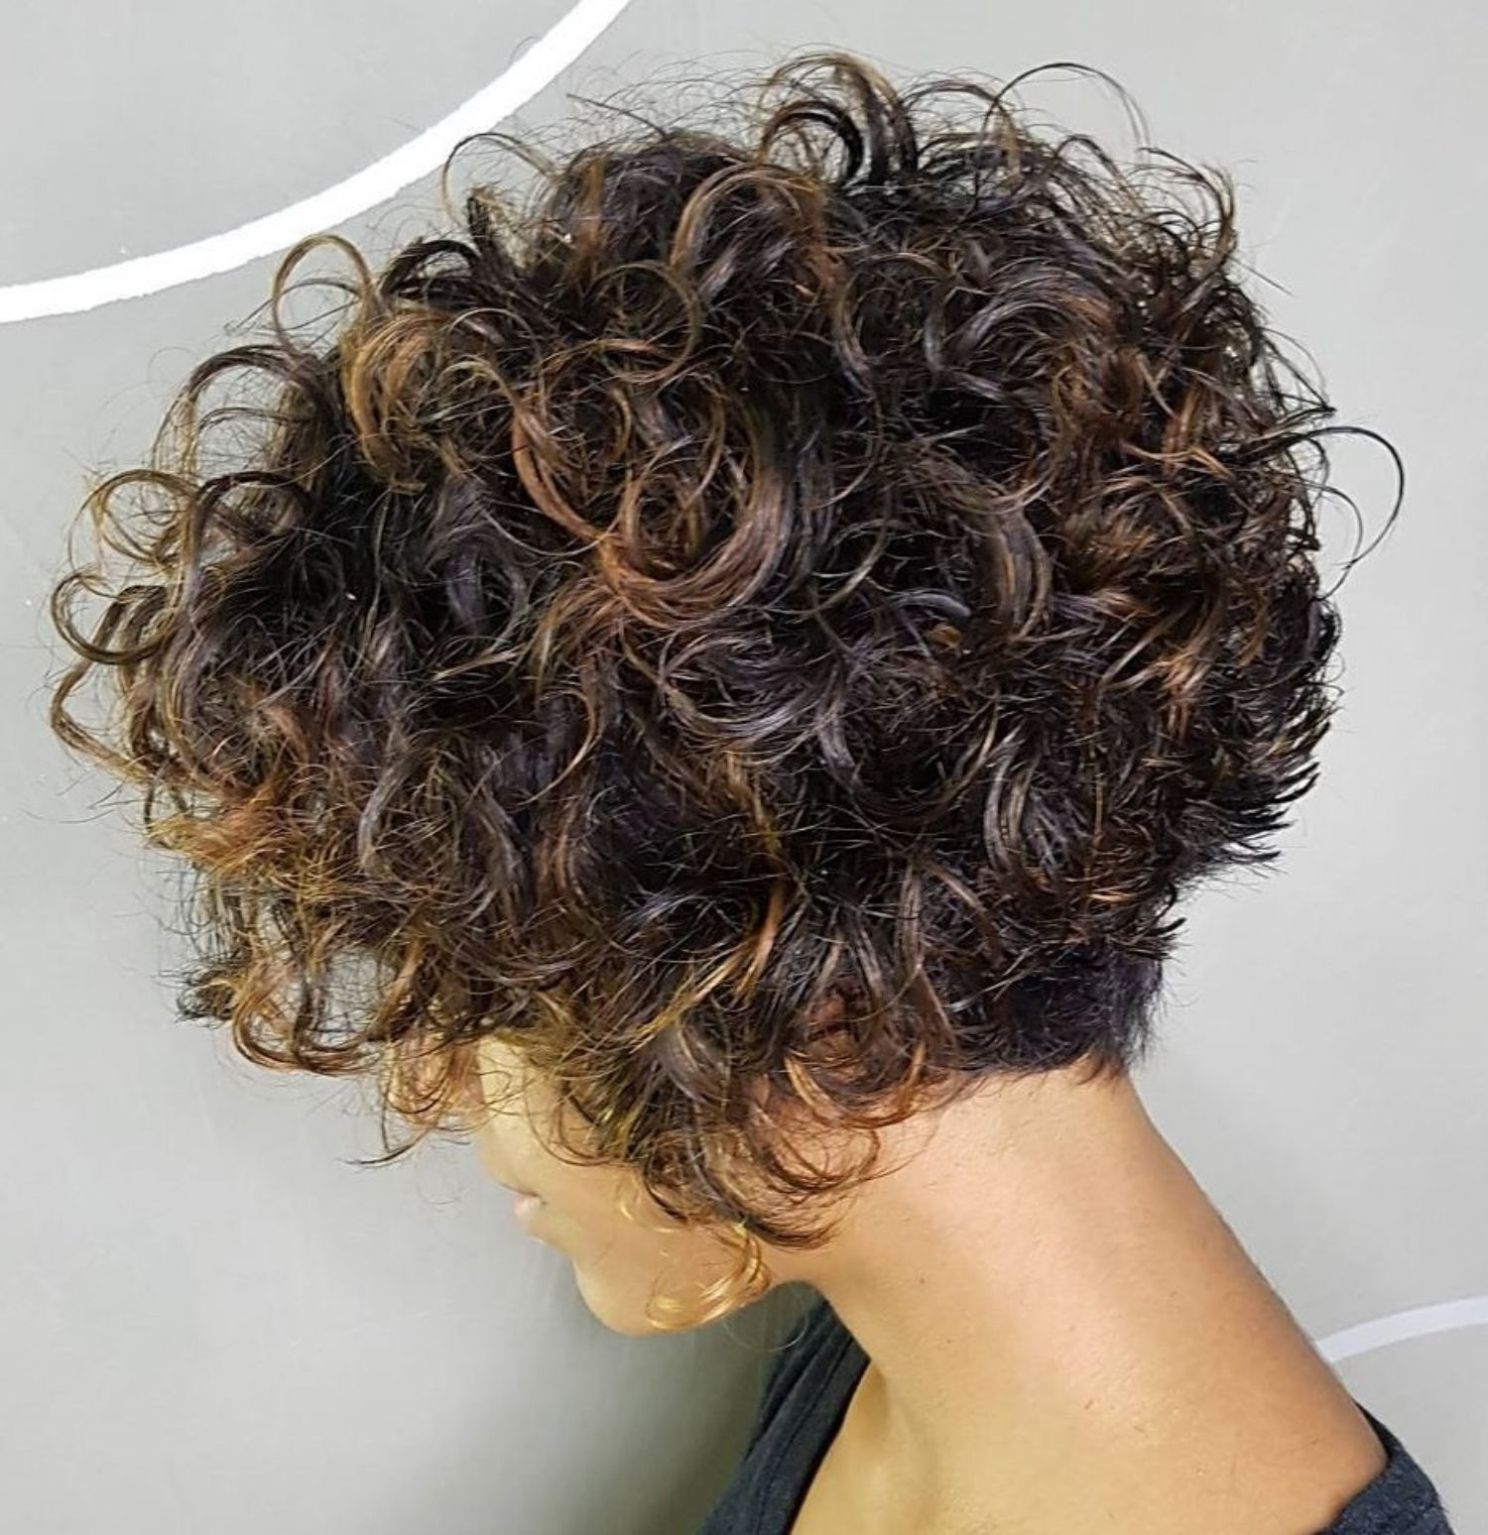 65 Different Versions of Curly Bob Hairstyle   Curly hair ...